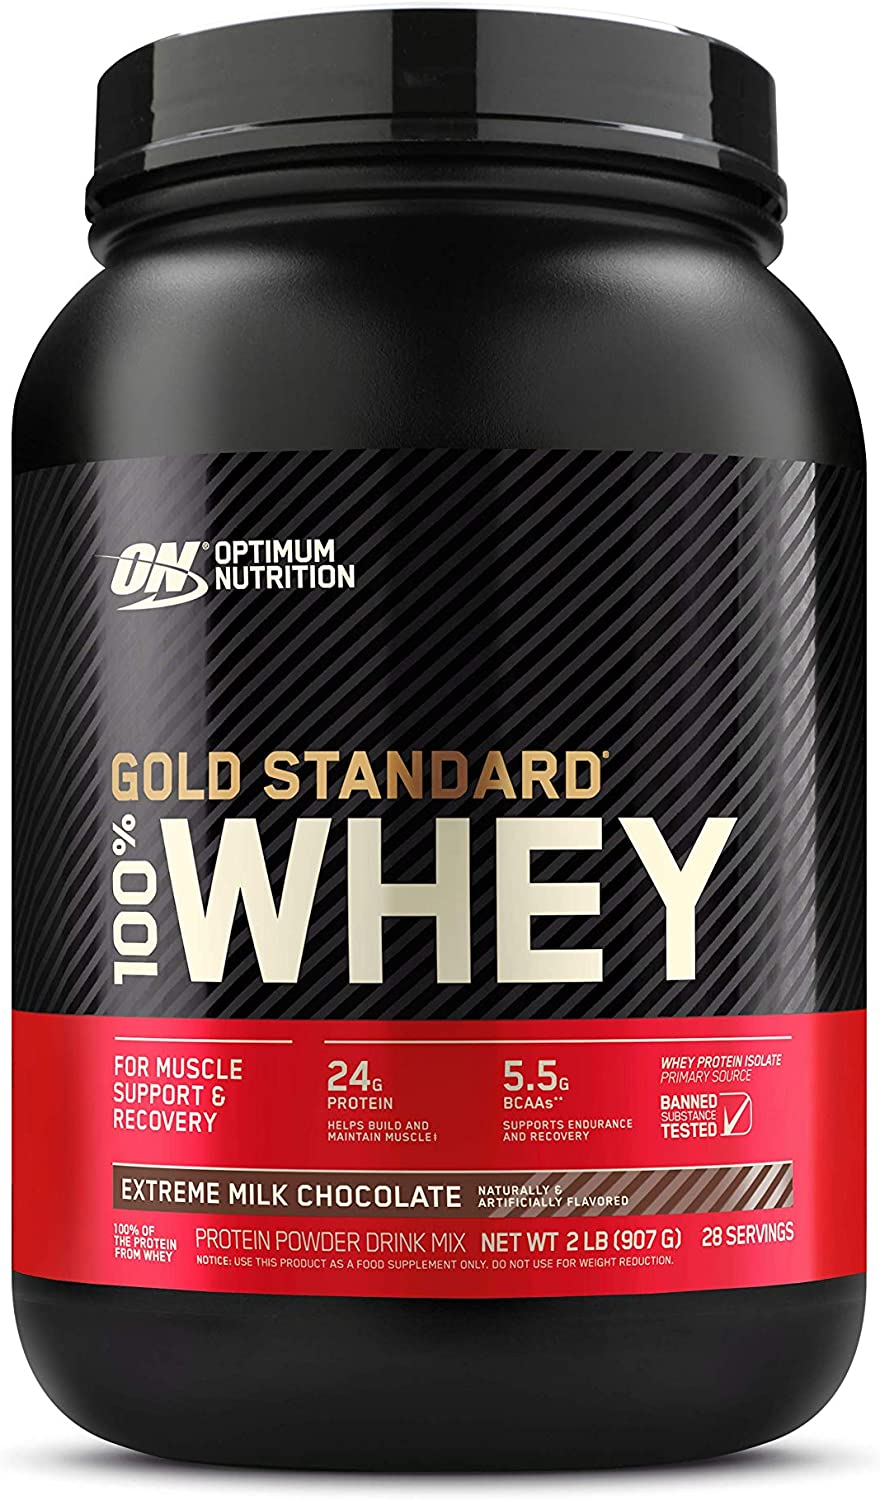 Optimum Nutrition Gold Standard 100% Whey Protein Powder, Extreme Milk Chocolate, 2 Pound (Packaging May Vary): Health & Personal Care